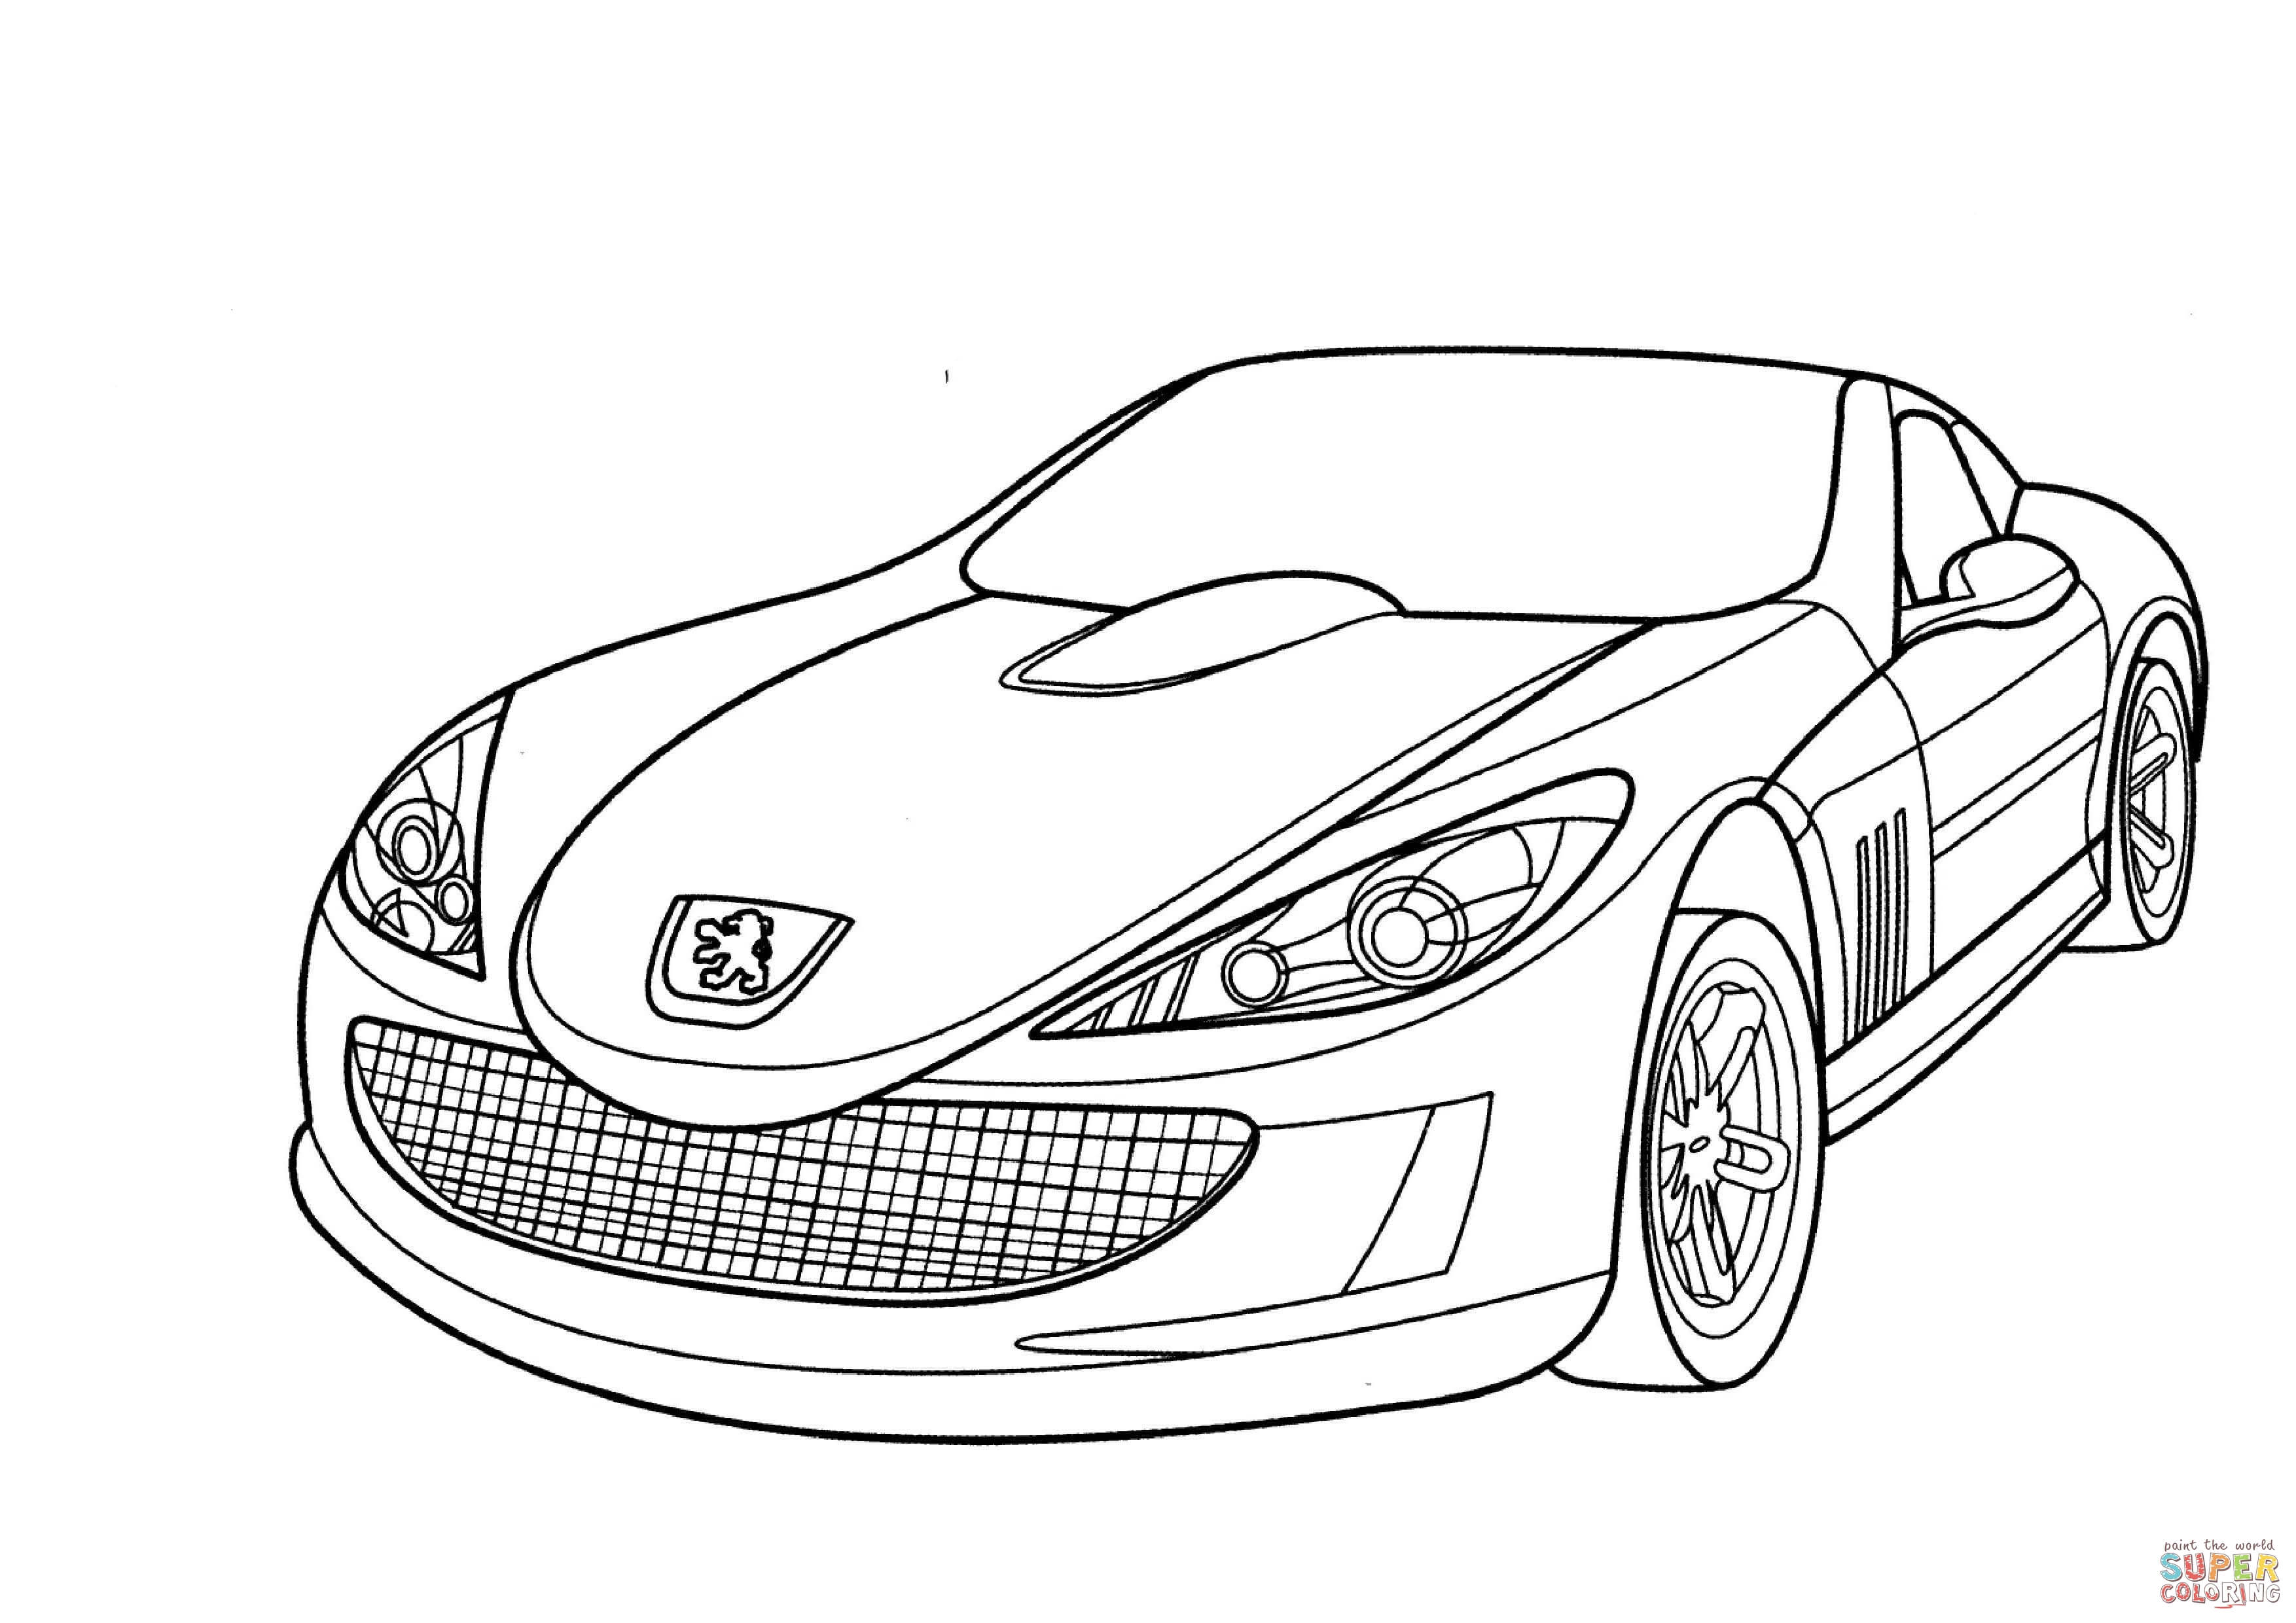 Peugeot 907 Coloring Page Free Printable Coloring Pages